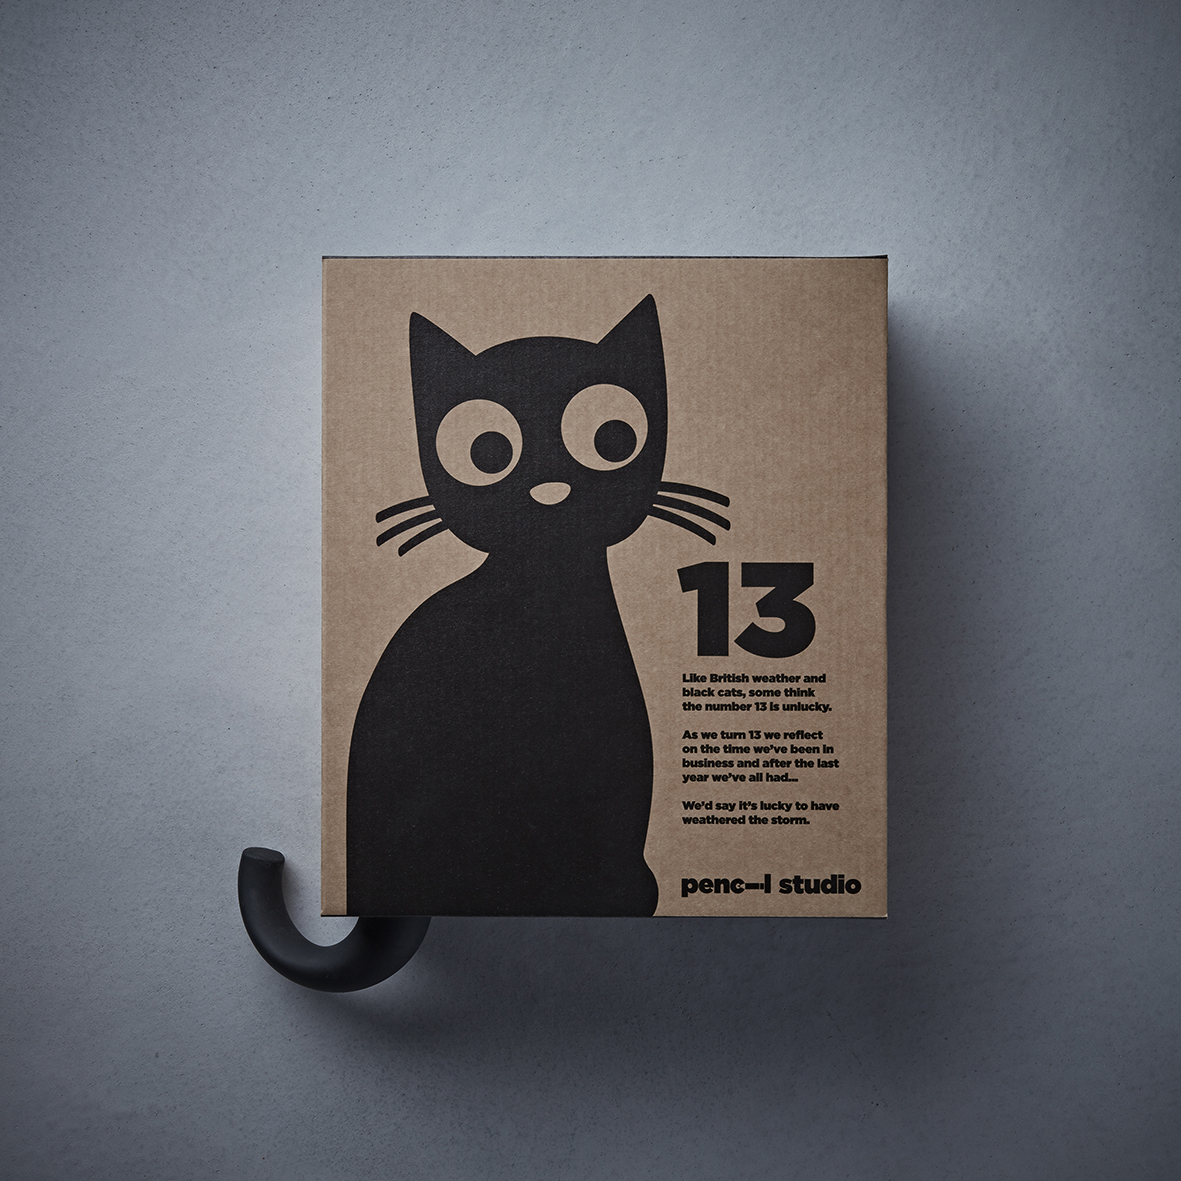 Promotional Mailer Celebrating Pencil Studio's 13th Anniversary